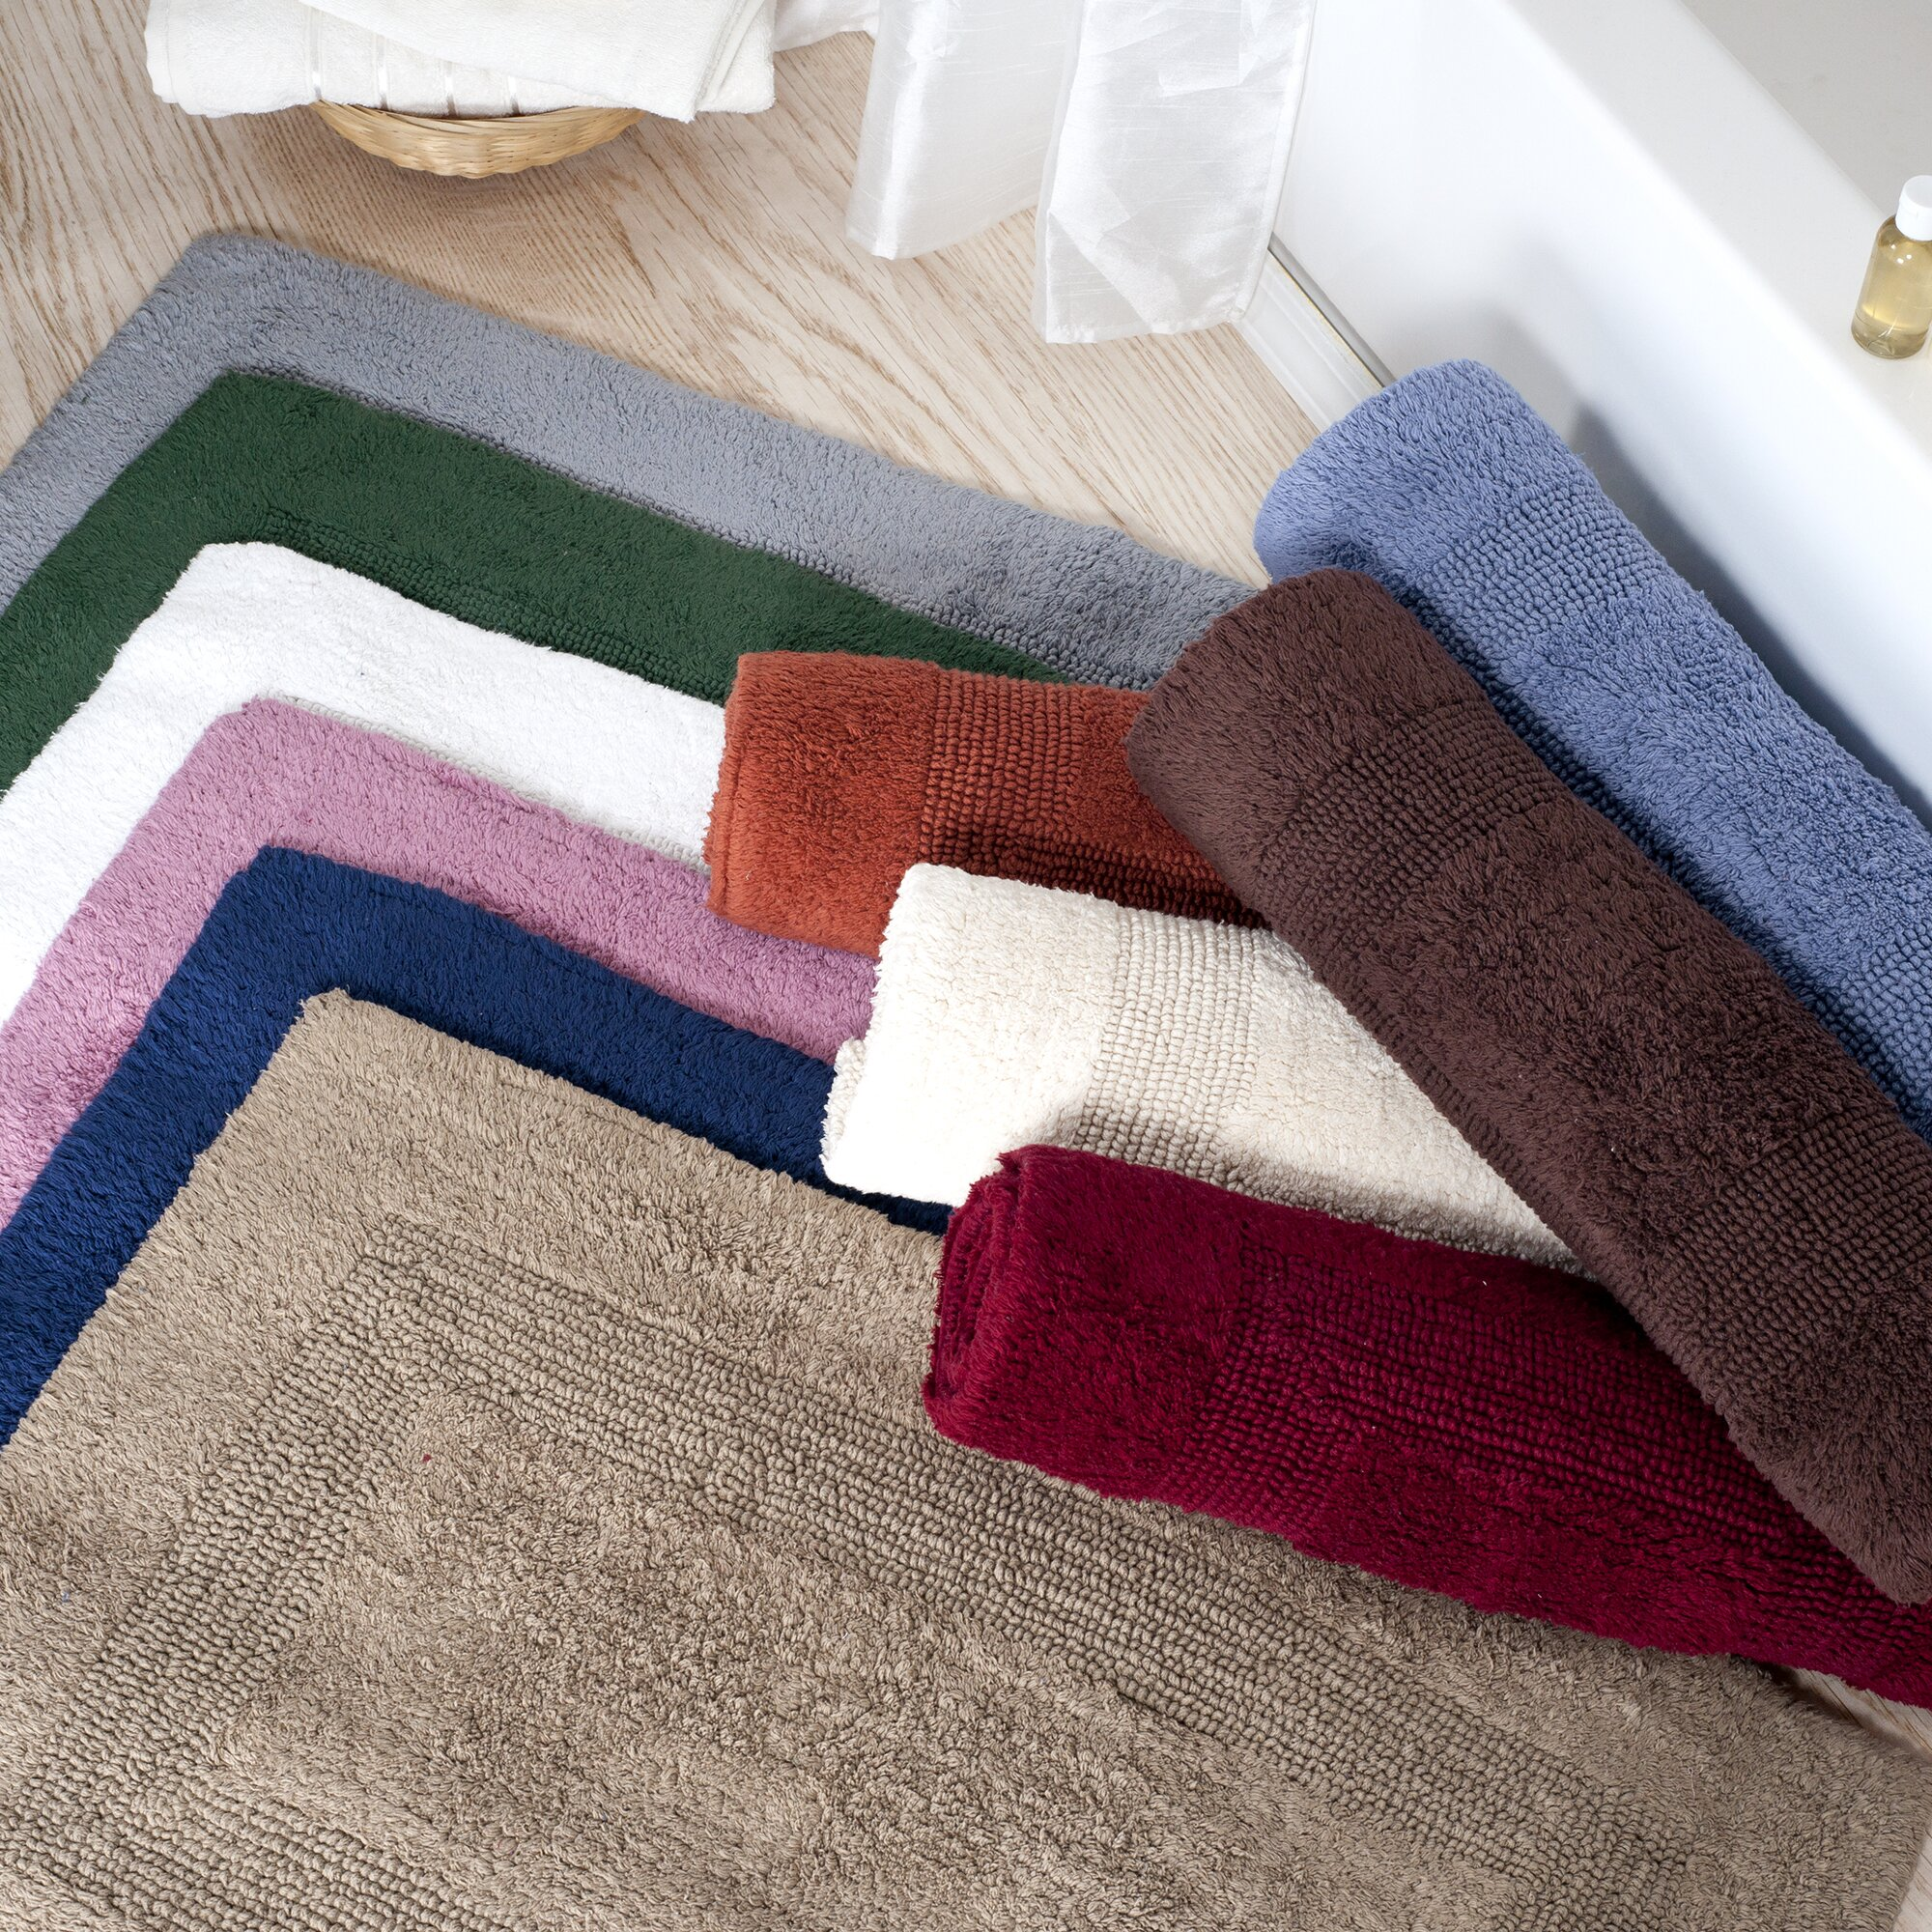 Abyss Towels Habidecor Rugs Online J Brulee Home Taupe Bathroom